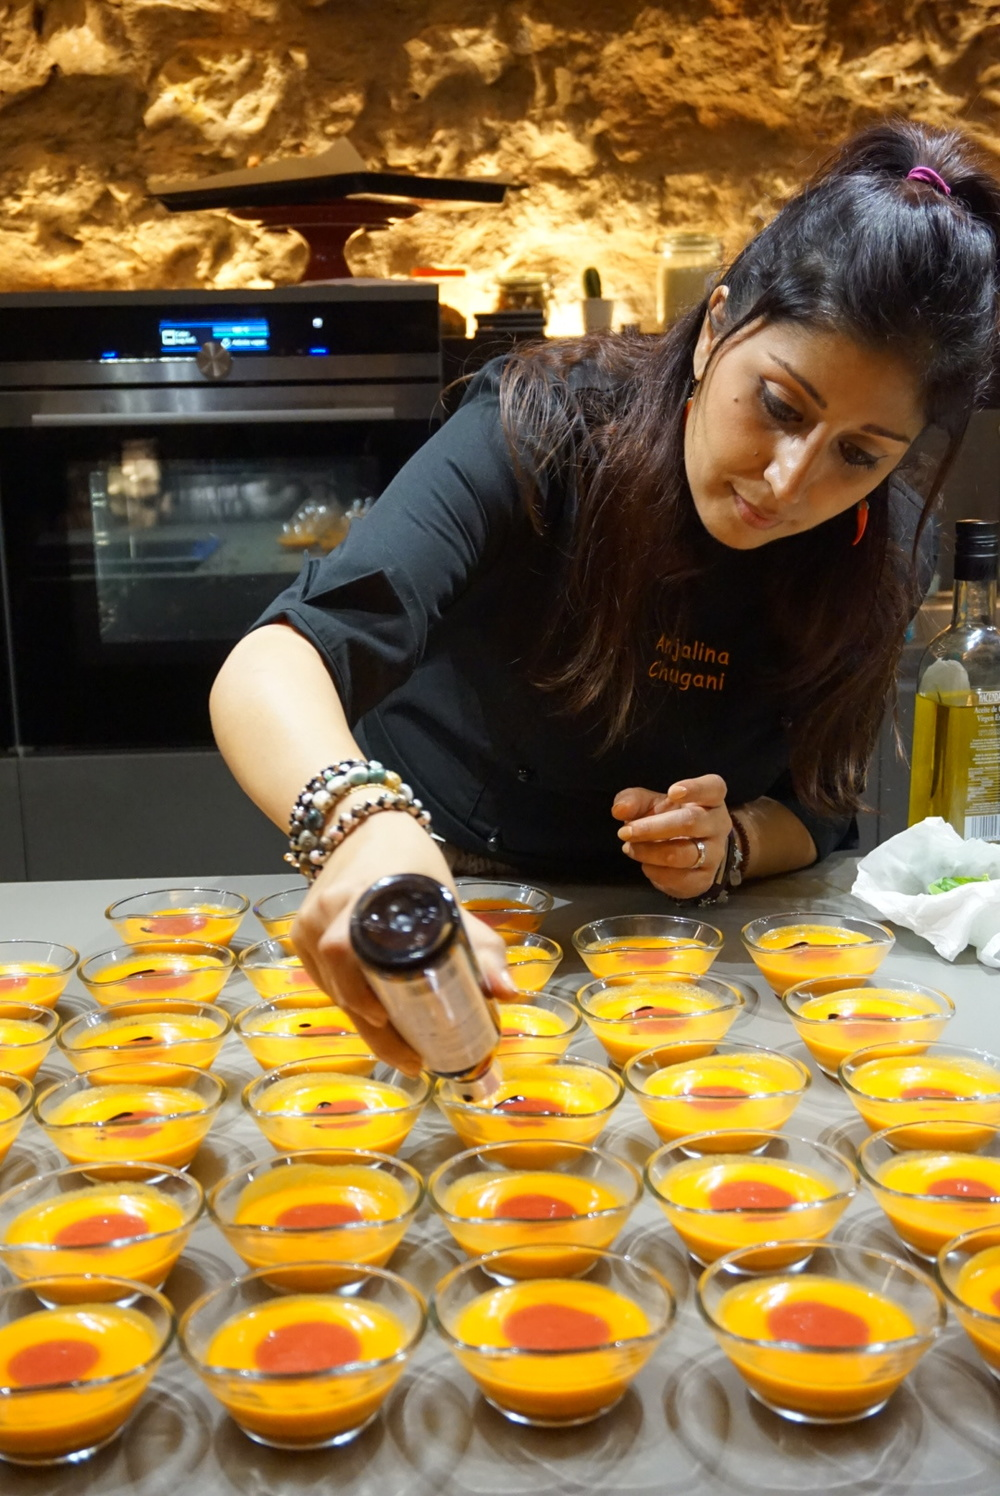 Anjalina Chugani preparing the dishes for the Foodie Pop Up Experience